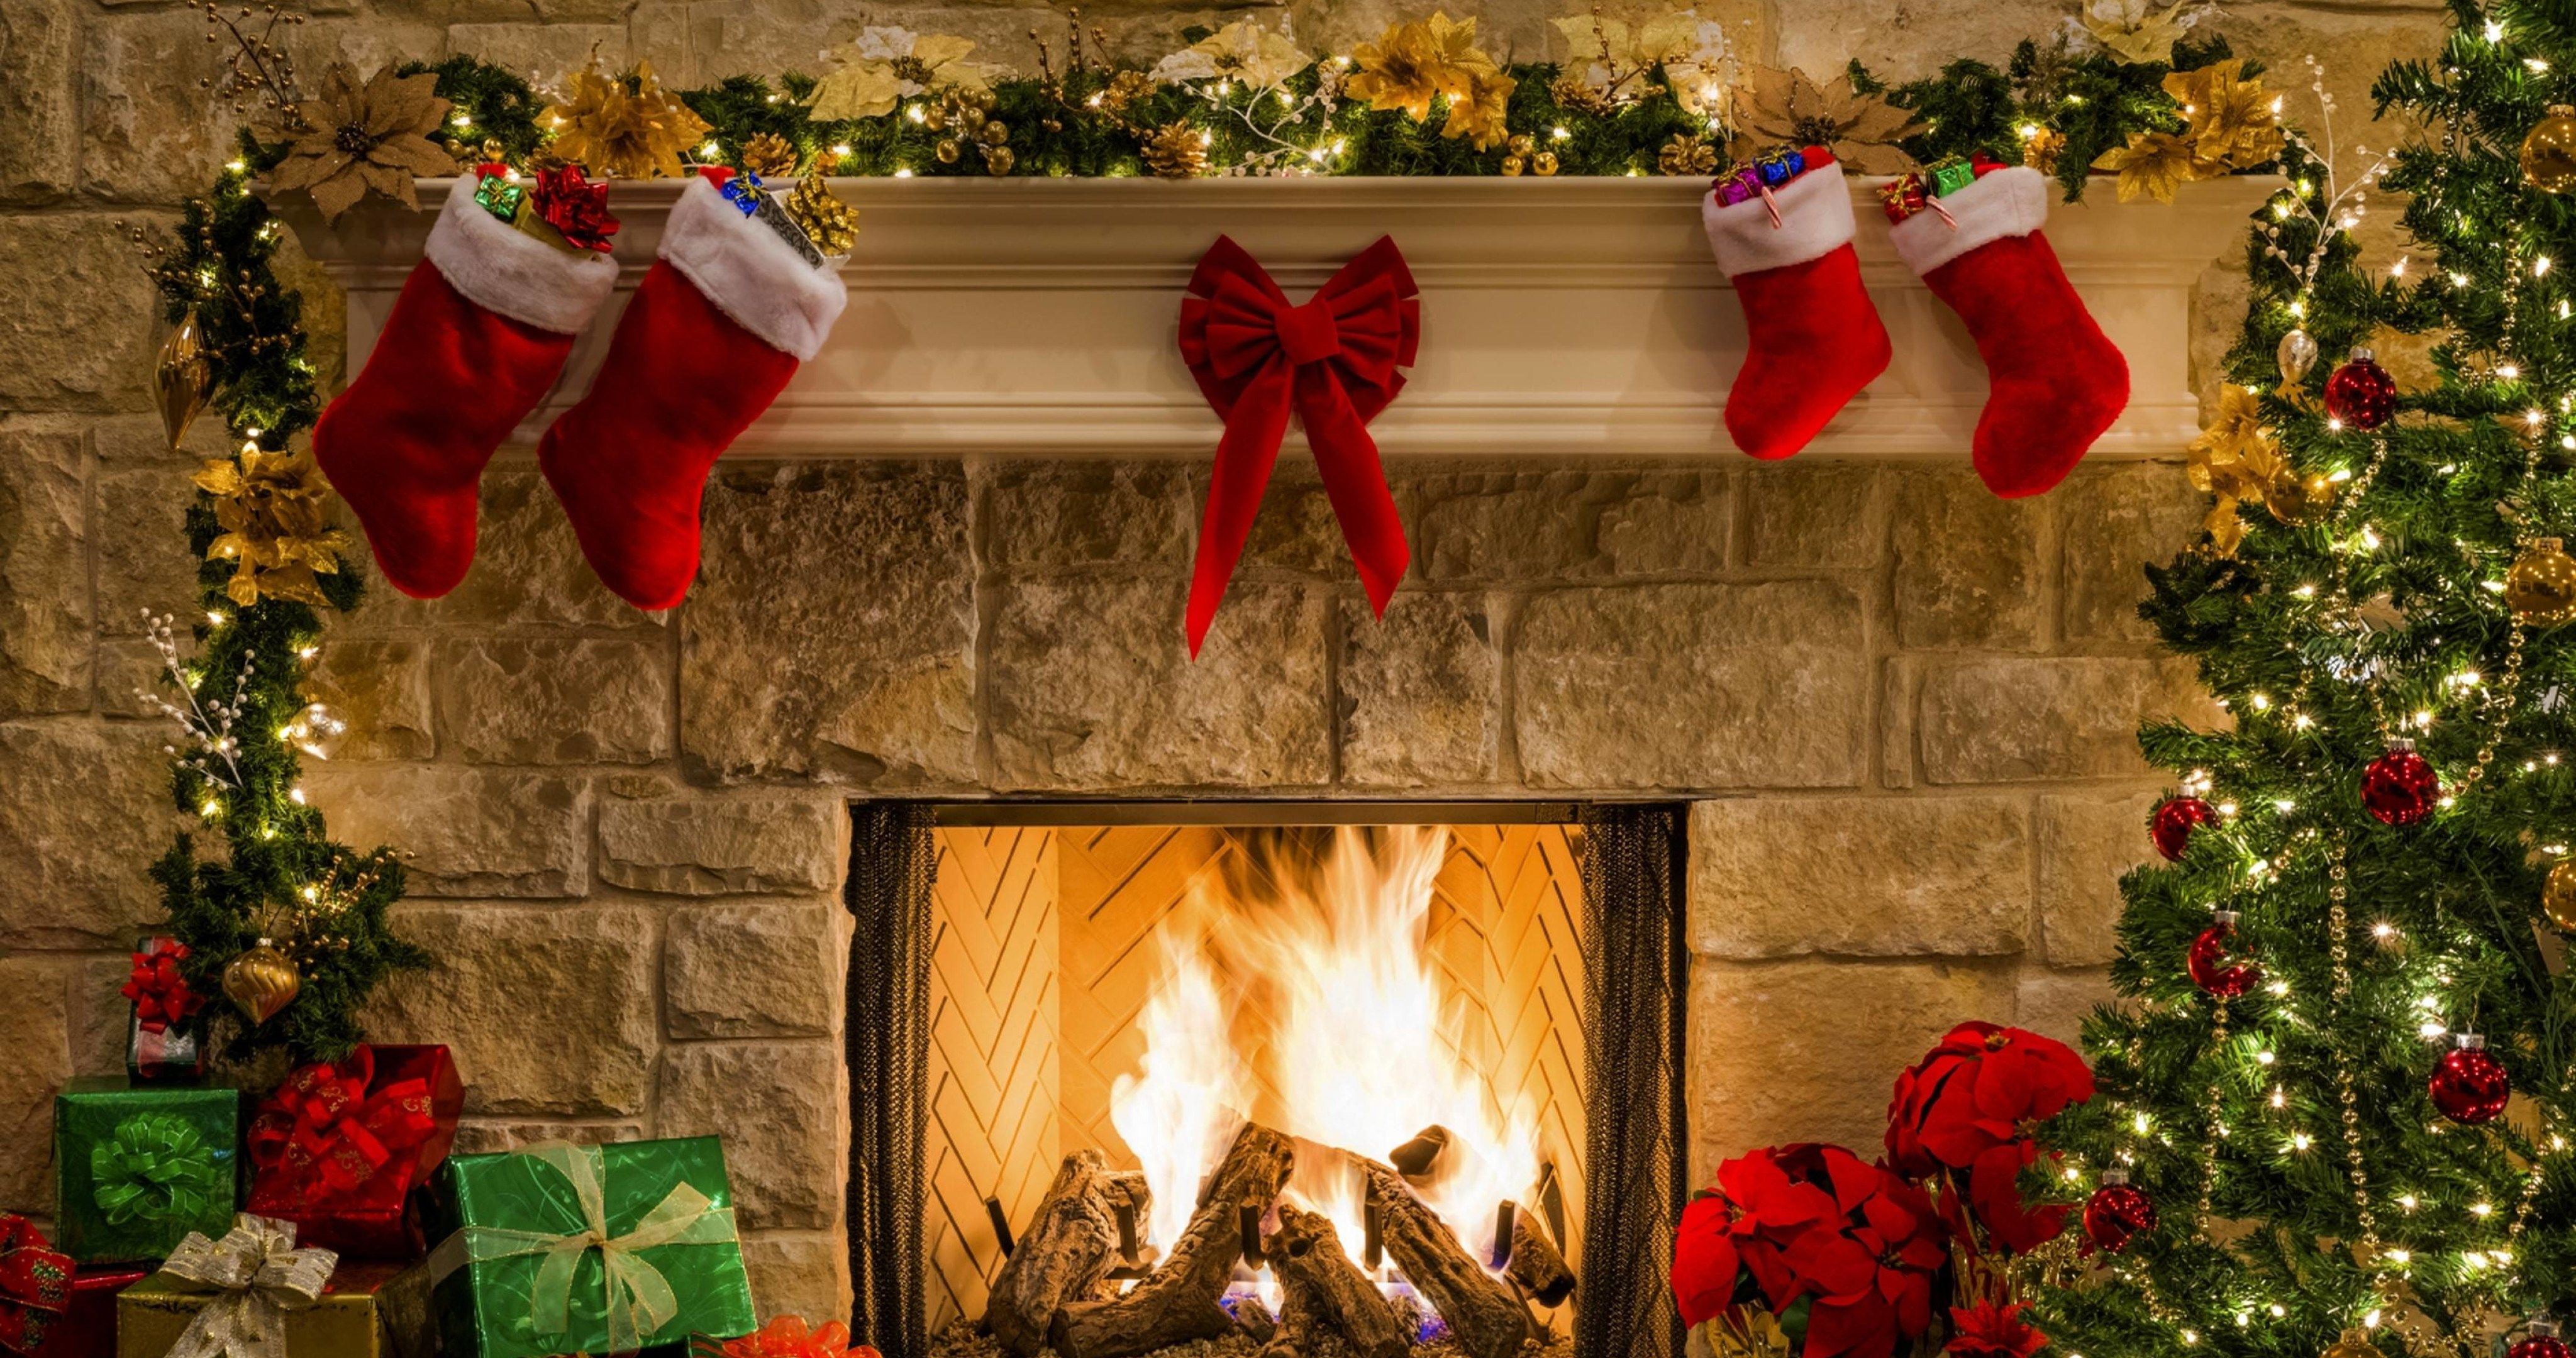 Christmas fireplace wallpaper clipart images gallery for 4096x2160